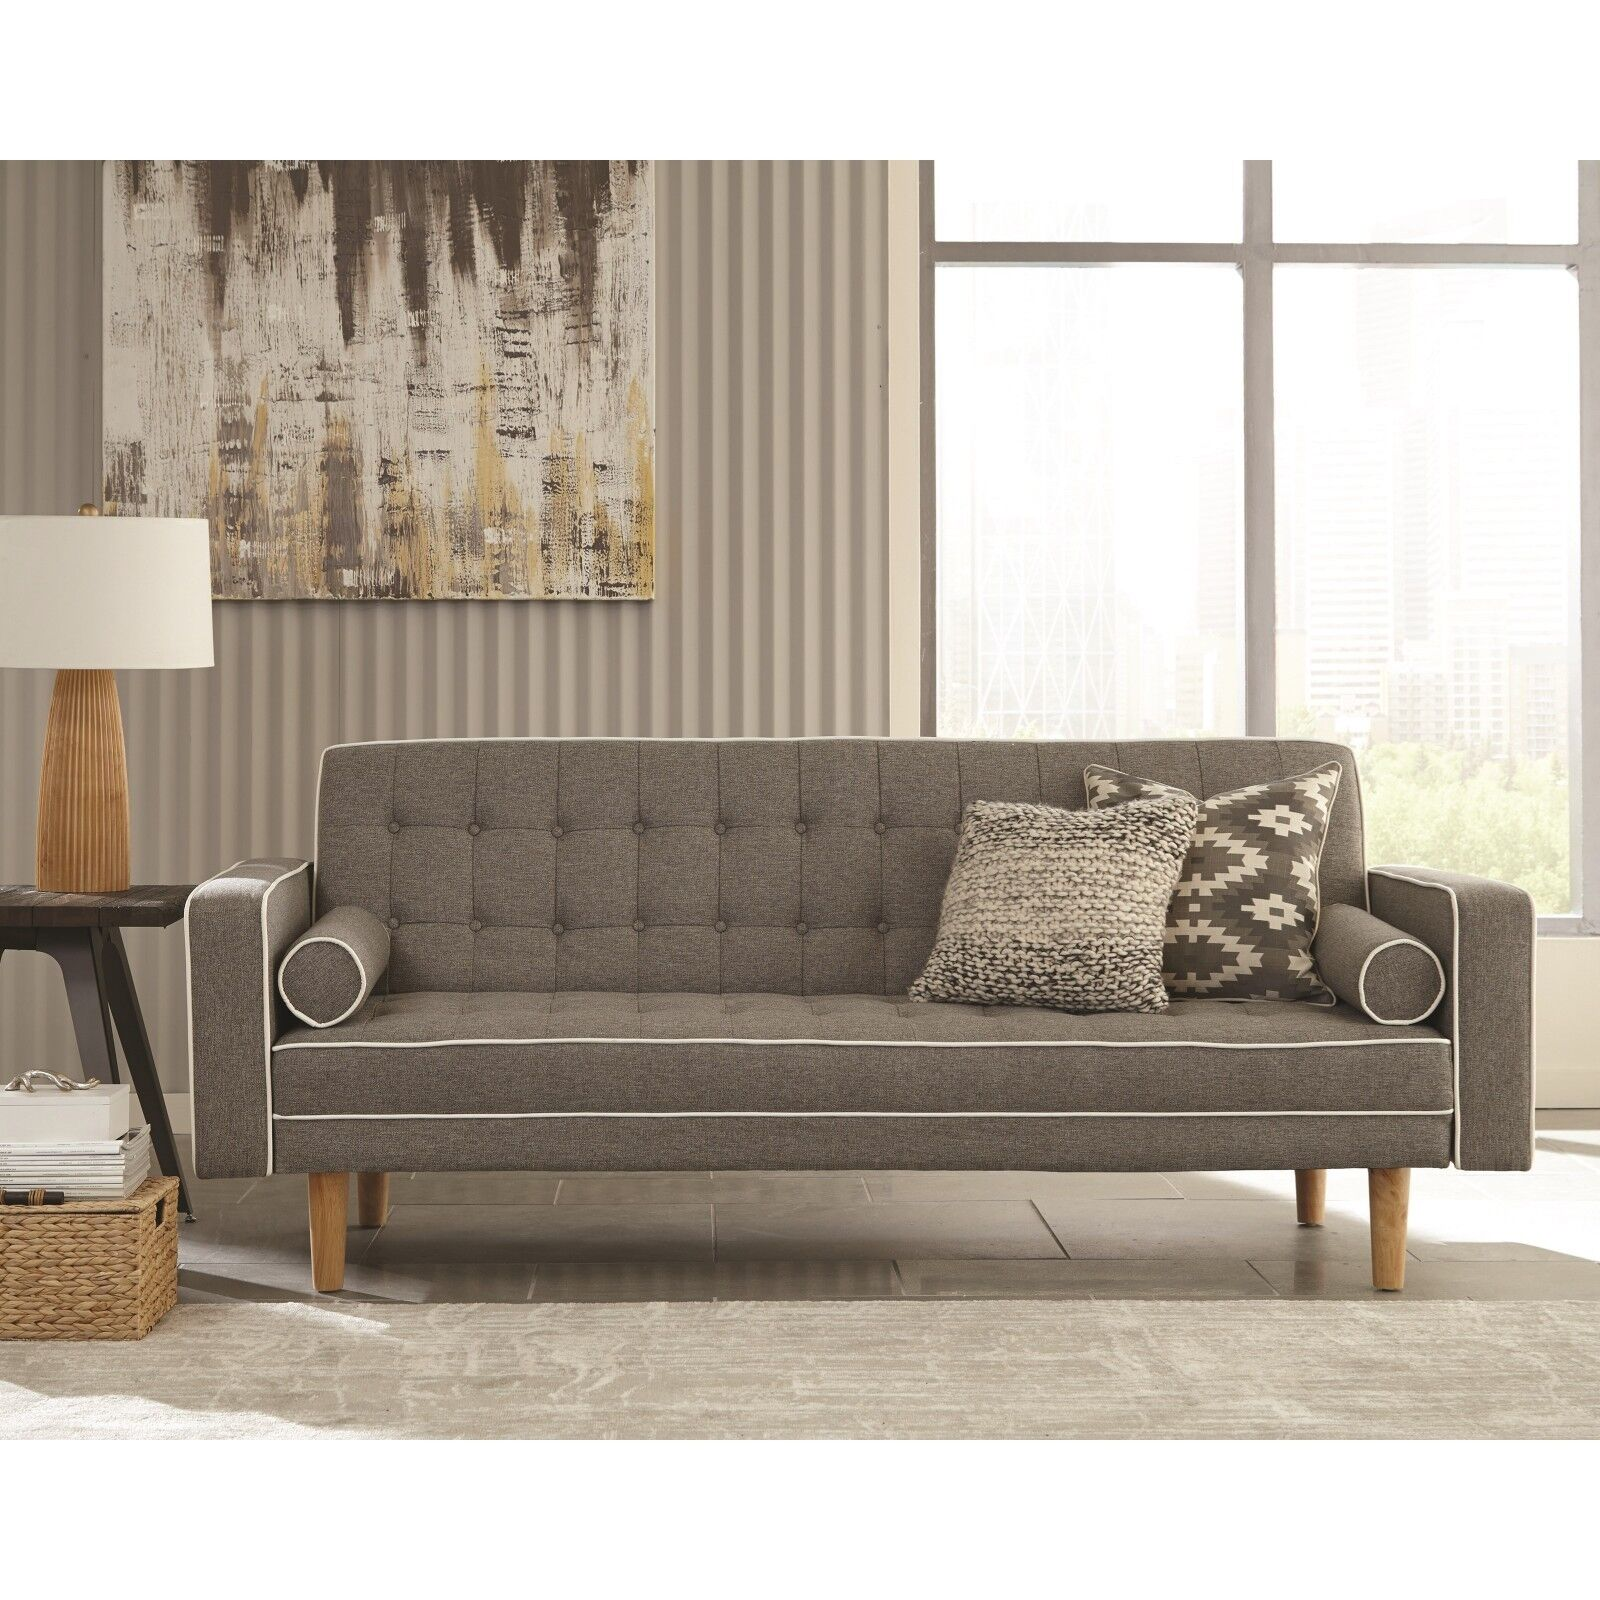 PERFECT FOR DORM ROOM GRAY TUFTED WOVEN SOFA BED FUTON LIVIN